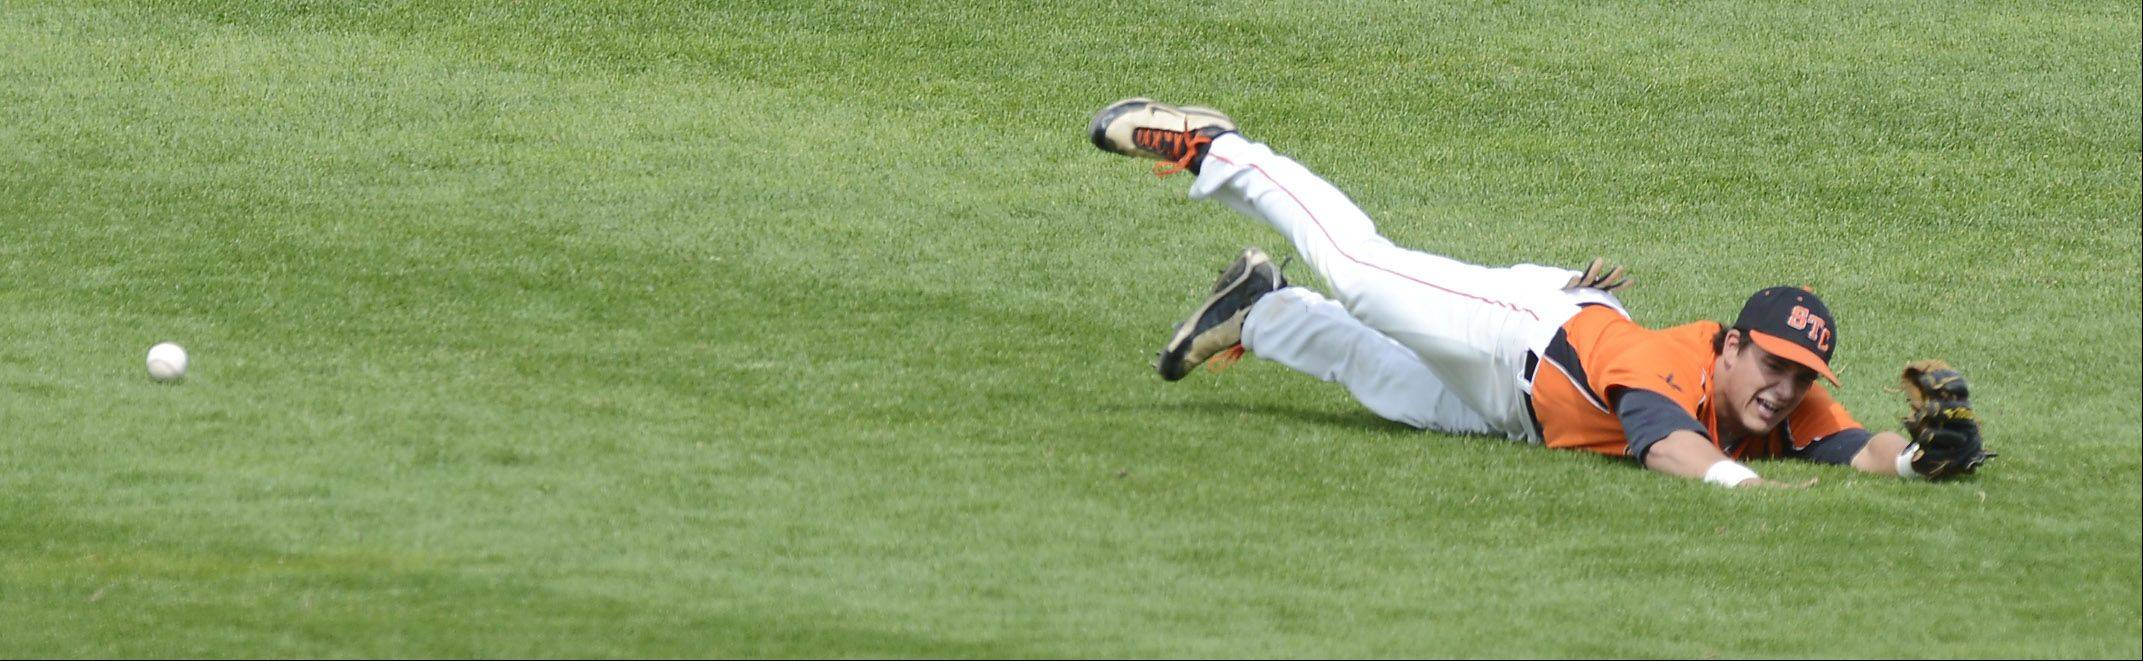 St. Charles East center fielder Anthony Sciarrino can't quite get to a ball hit to the outfield by Neuqua Valley's Matt Butler in the second inning during the Class 4A state baseball third-place game at Silver Cross Field in Joliet Saturday.